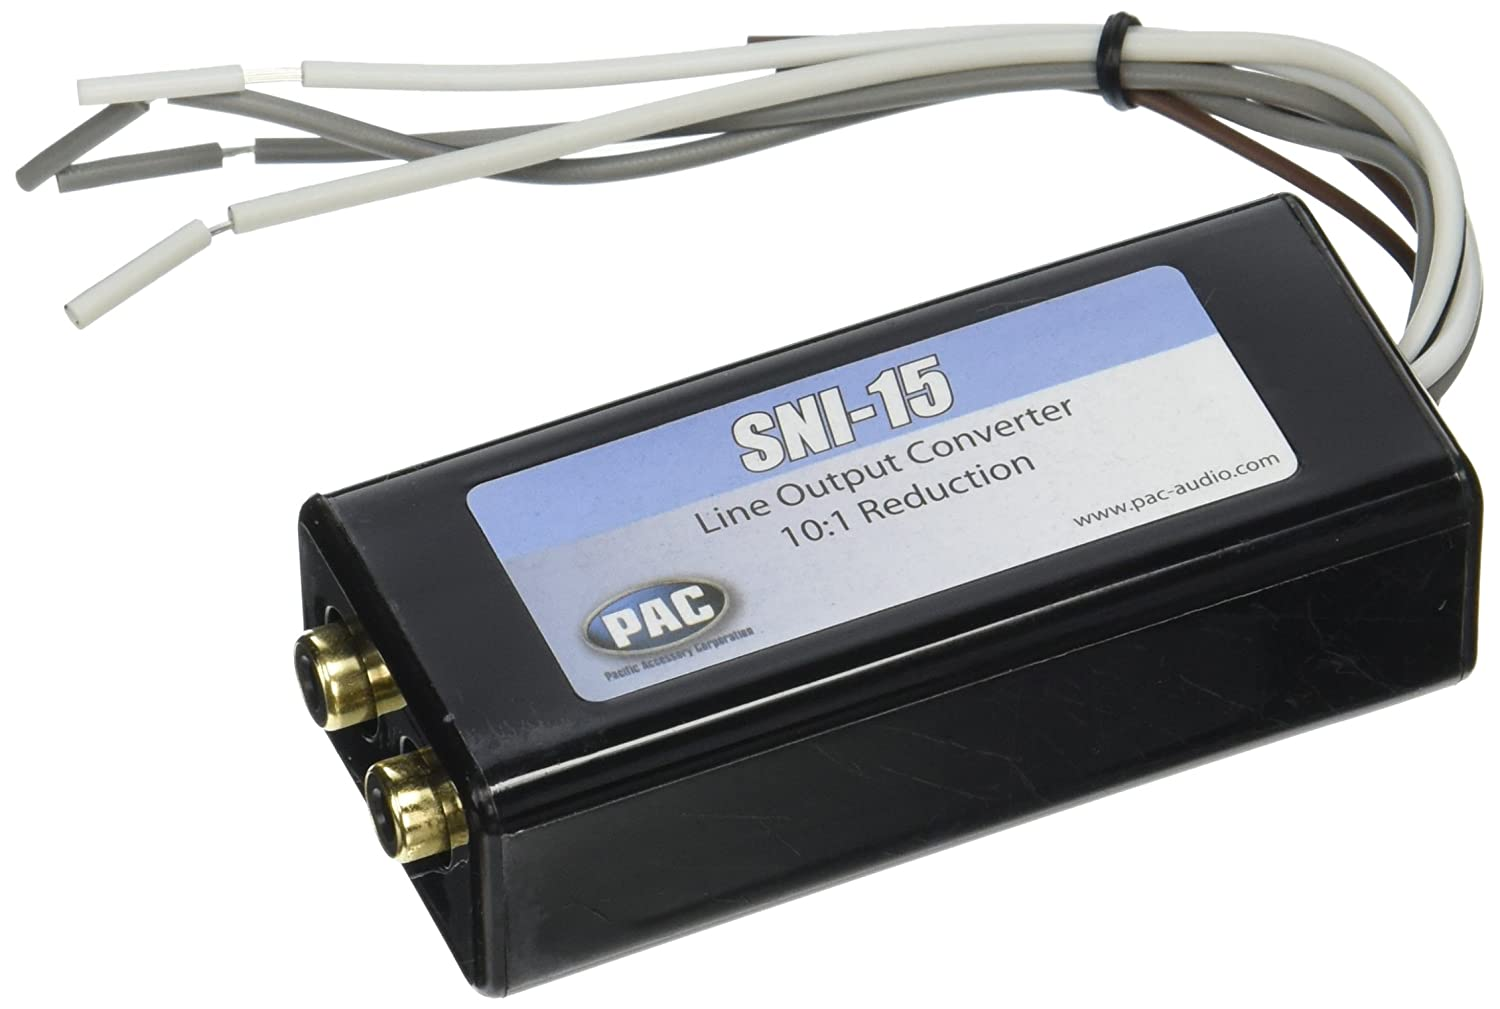 71UQXrYWczL._SL1500_ amazon com pac sni15 line output converter for adding amplifier Line Out Converter Wiring Common Ground at gsmx.co